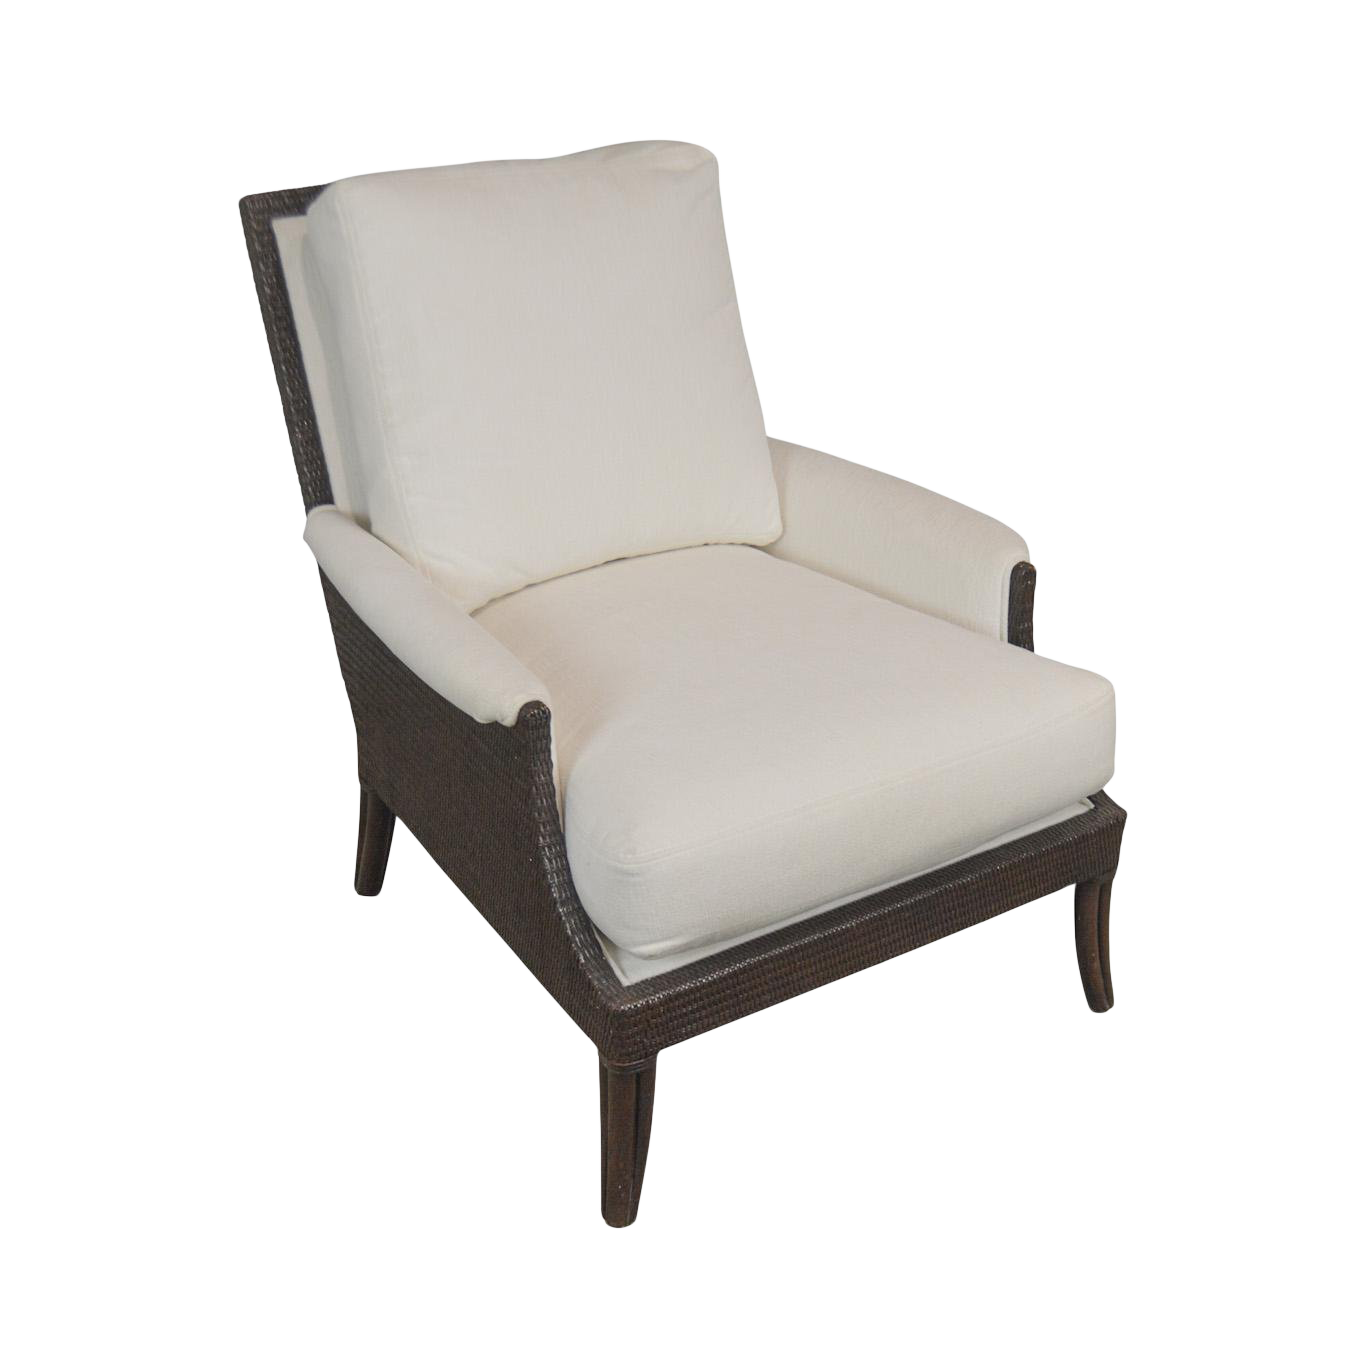 McGuire Of San Francisco Woven Rattan Upholstered Umbria Lounge Chair